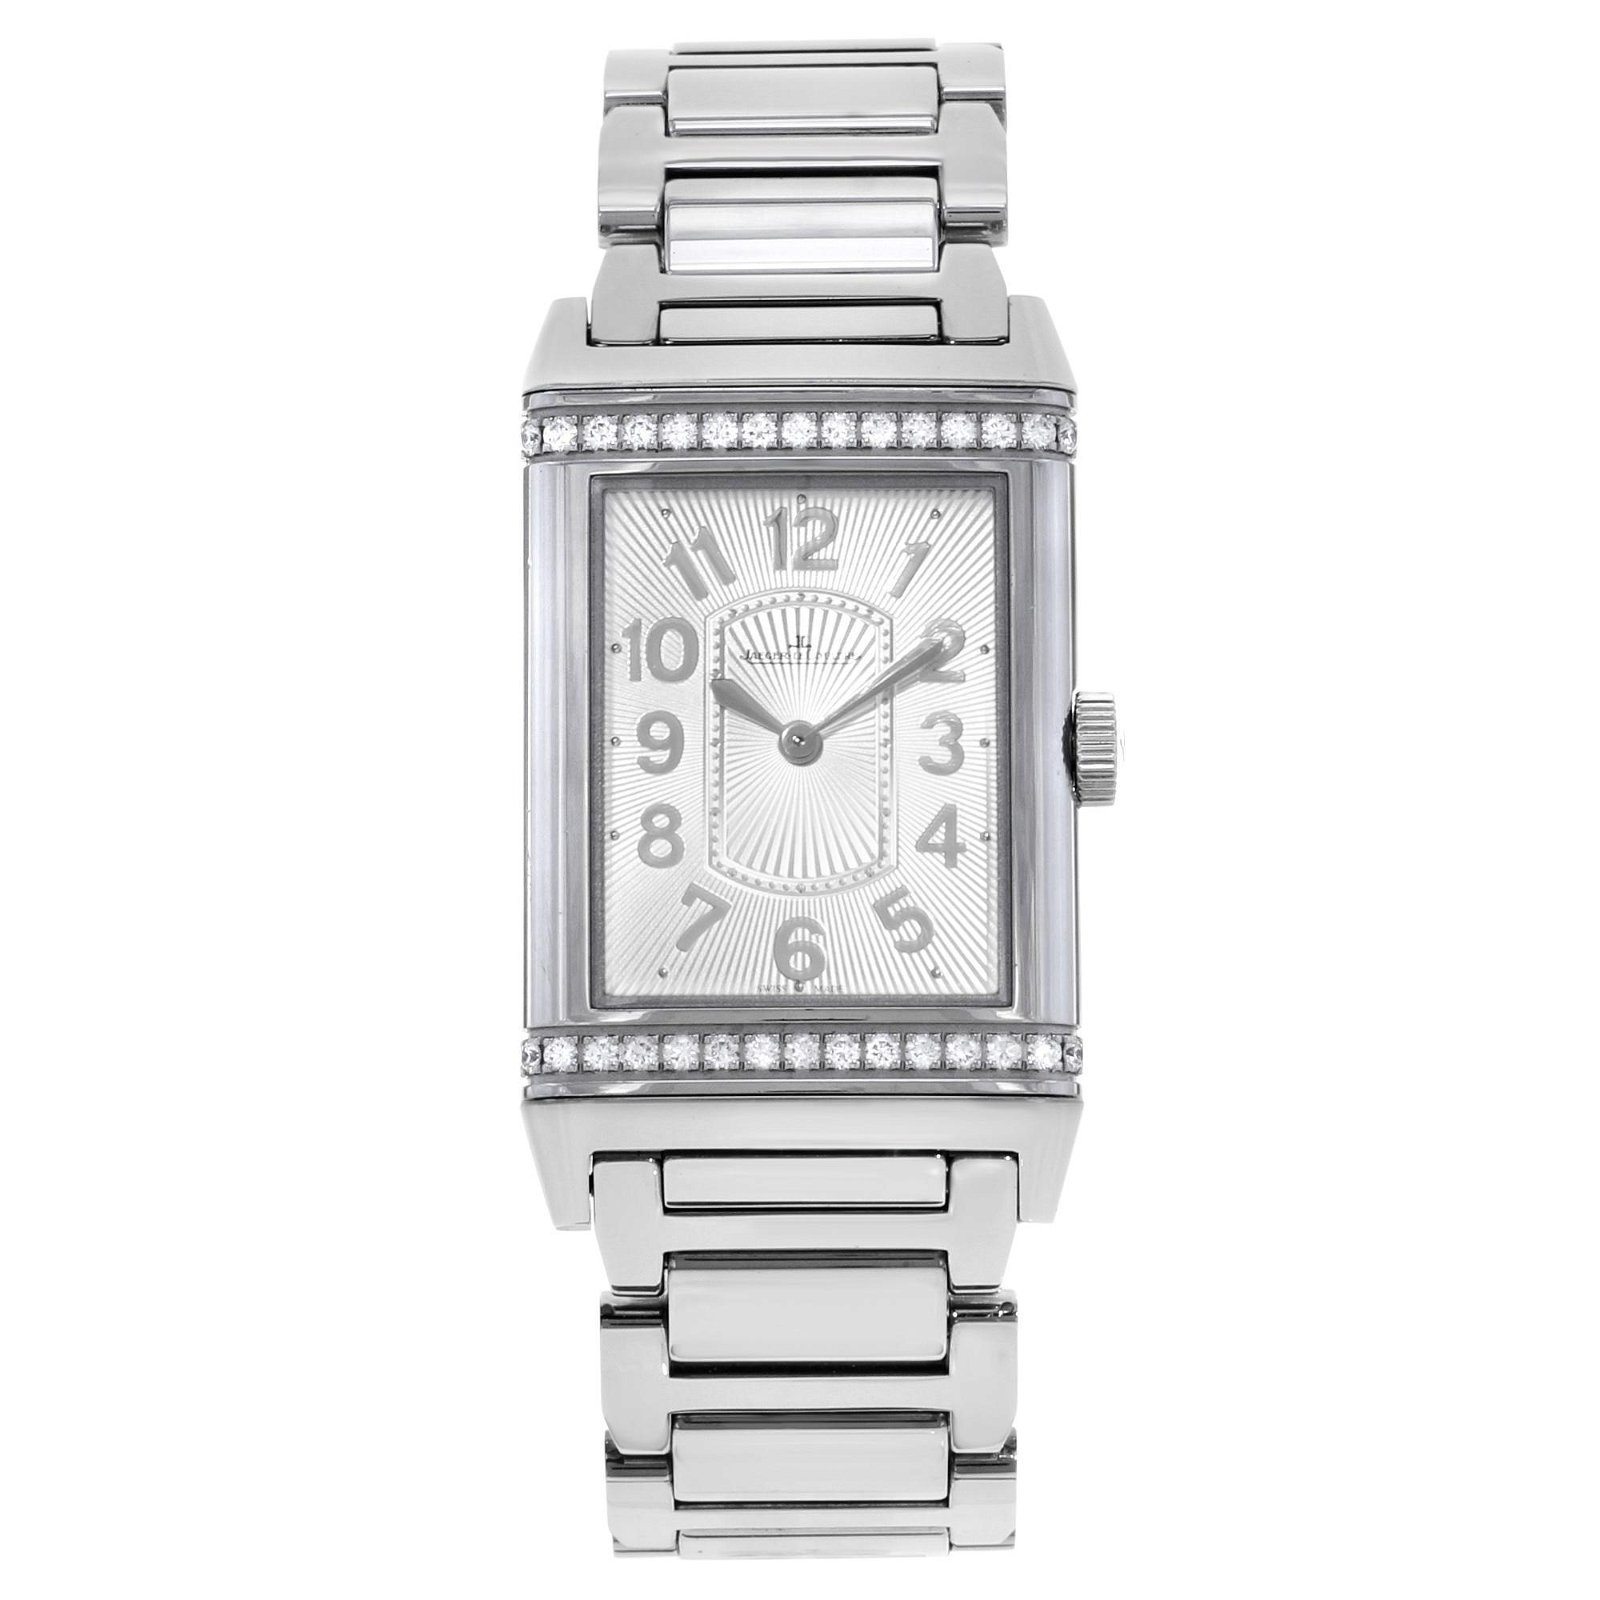 Jaeger LeCoultre Grand Reverso Ultra Thin Steel Manual